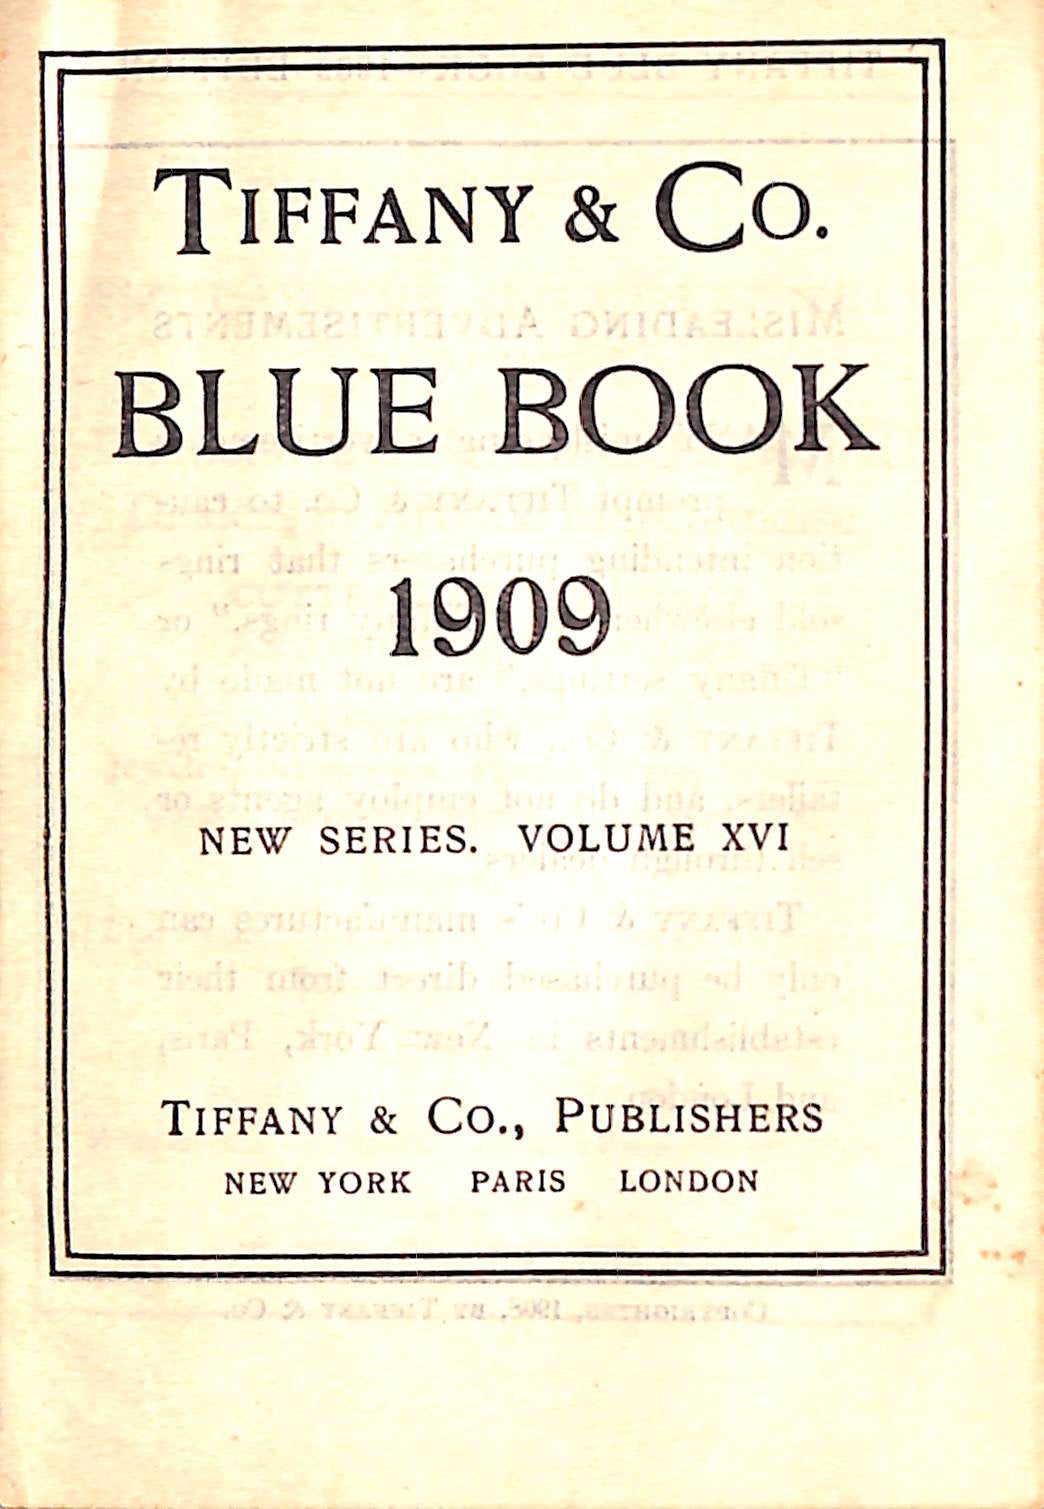 """Tiffany & Co. Blue Book 1909"" (SOLD)"